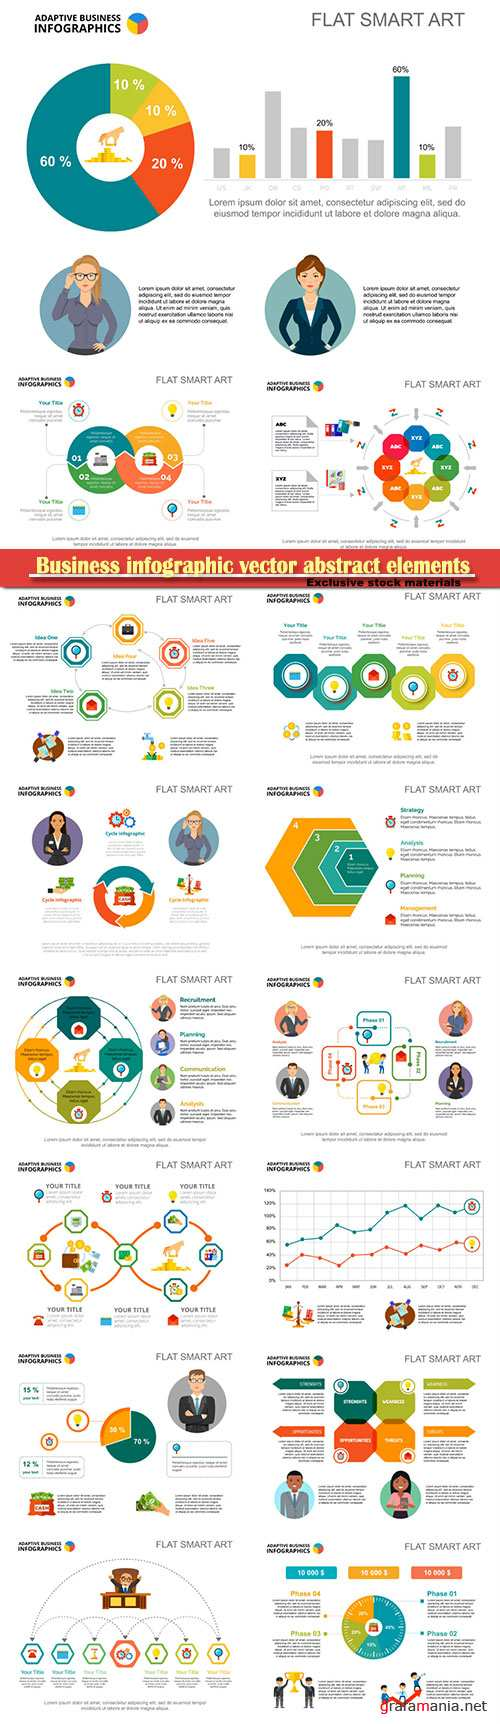 Business infographic vector abstract elements